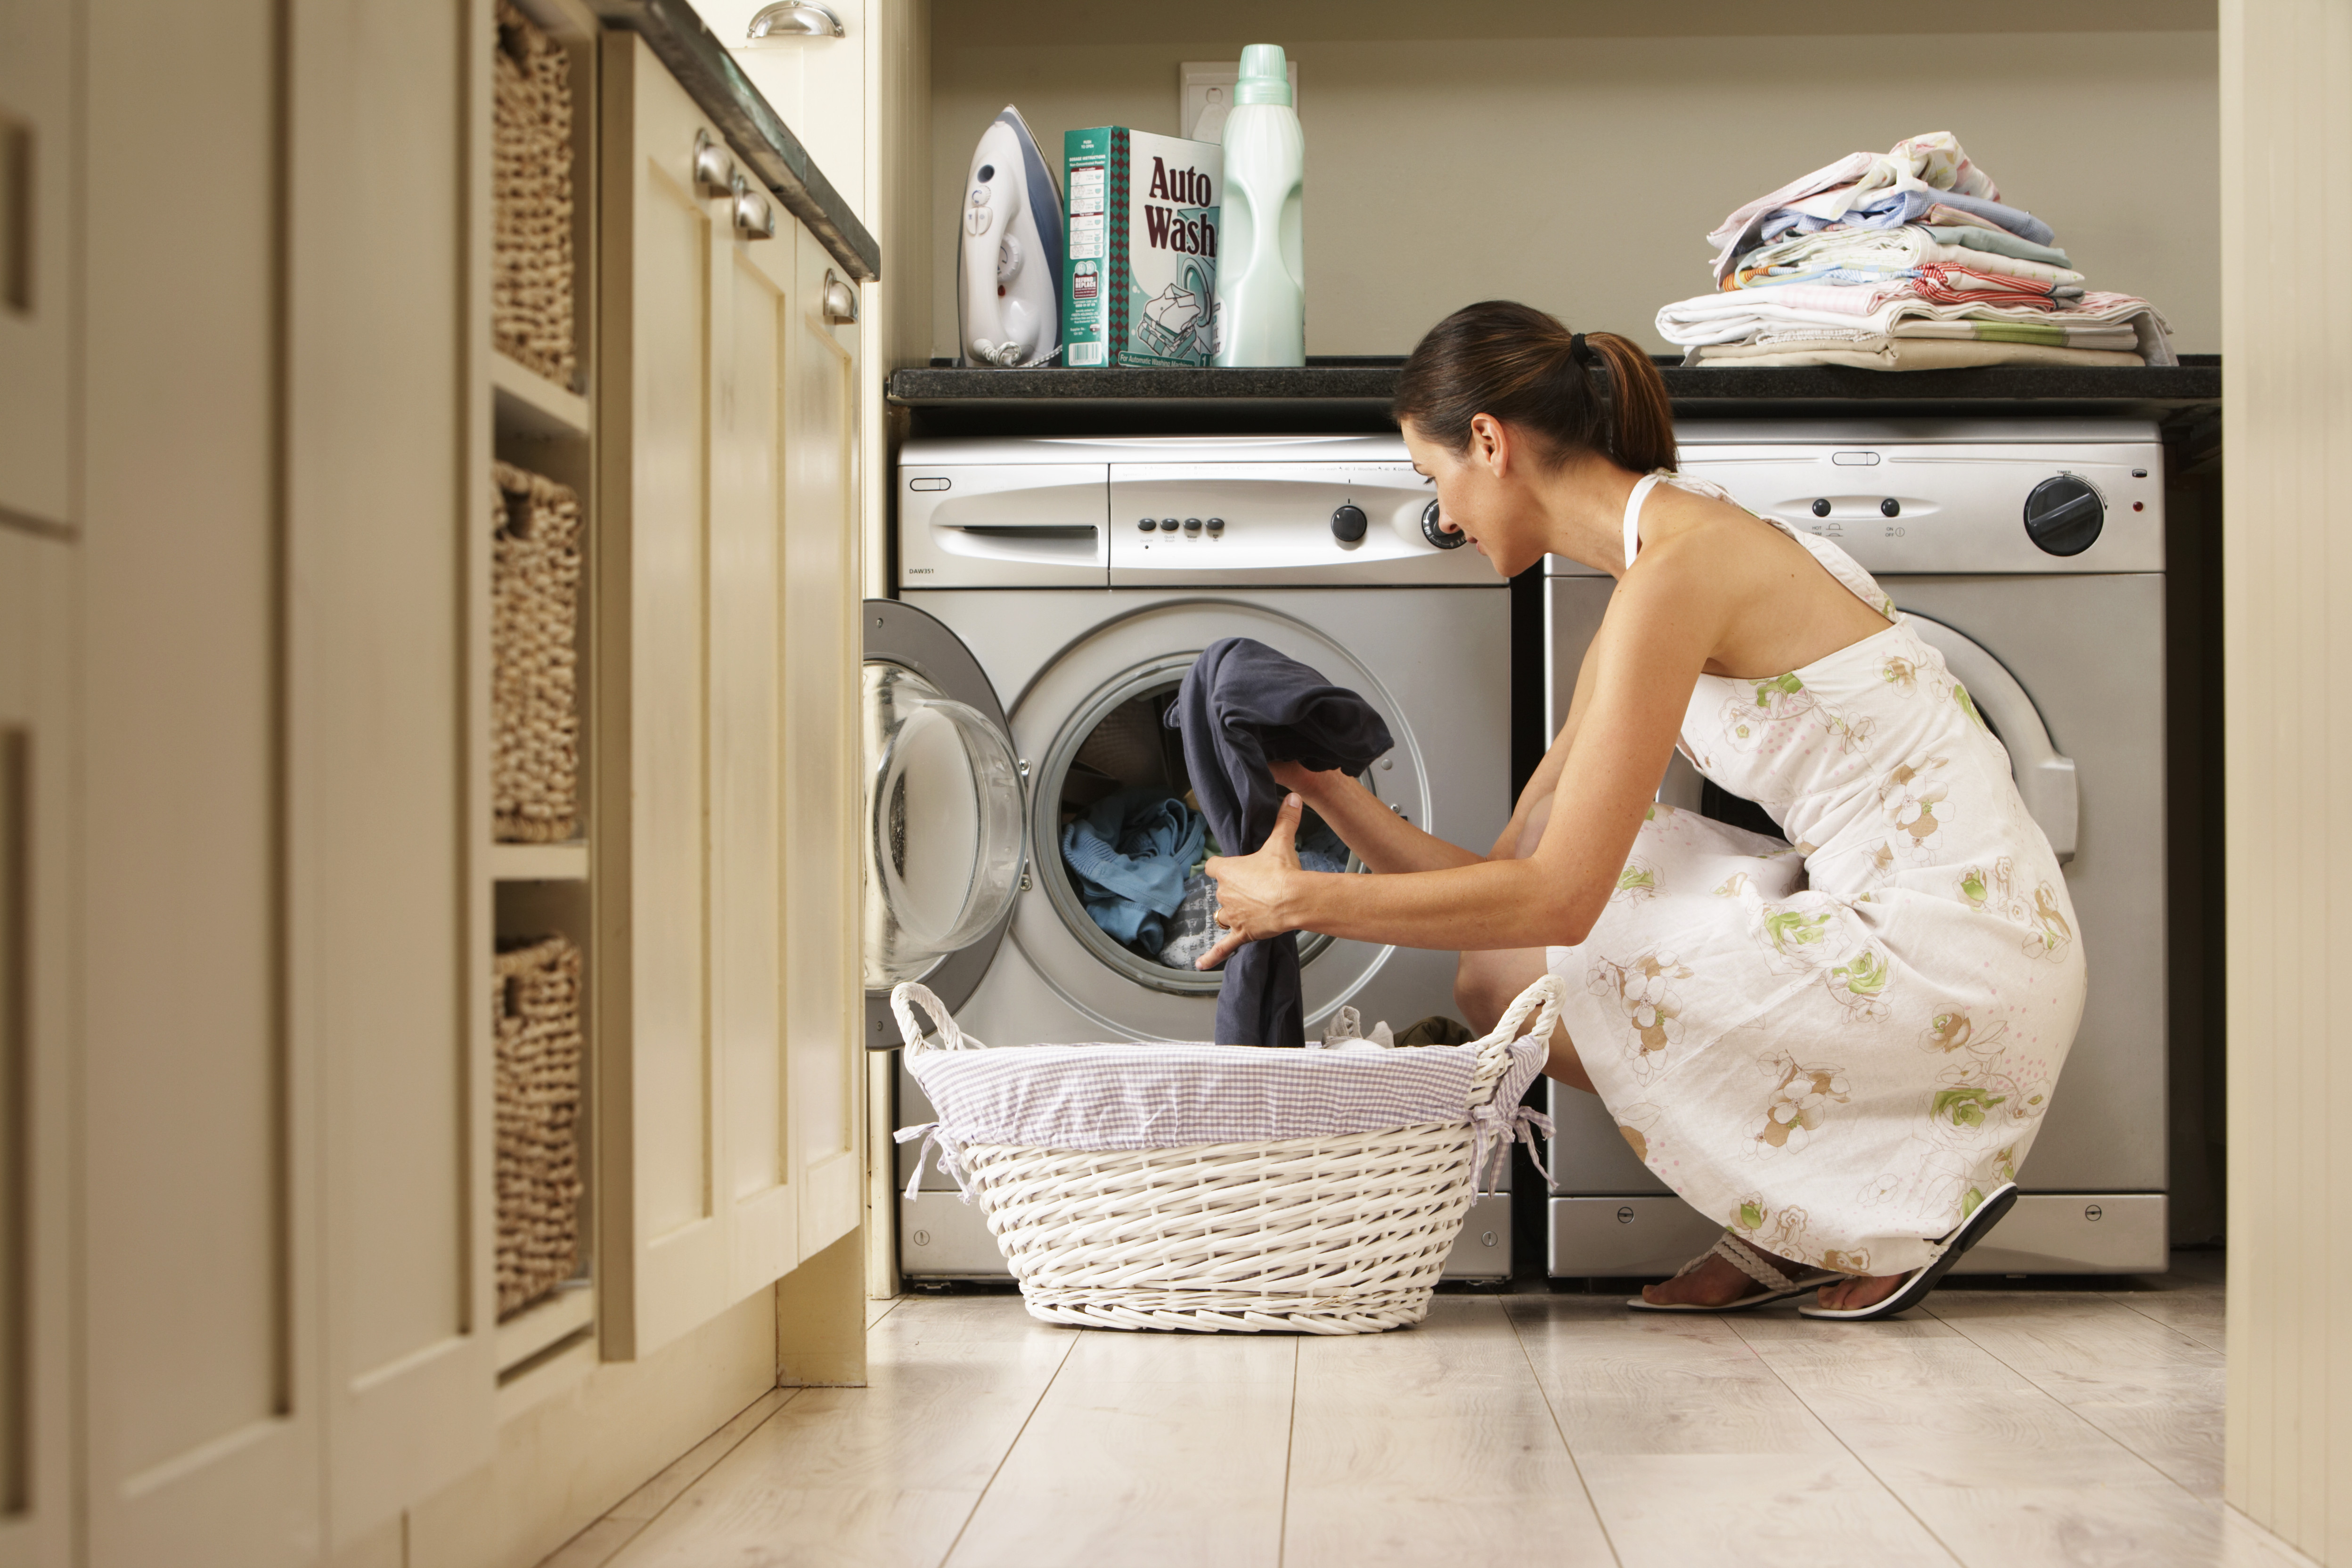 What Are the Pros & Cons of Using a Washing Machine Without an